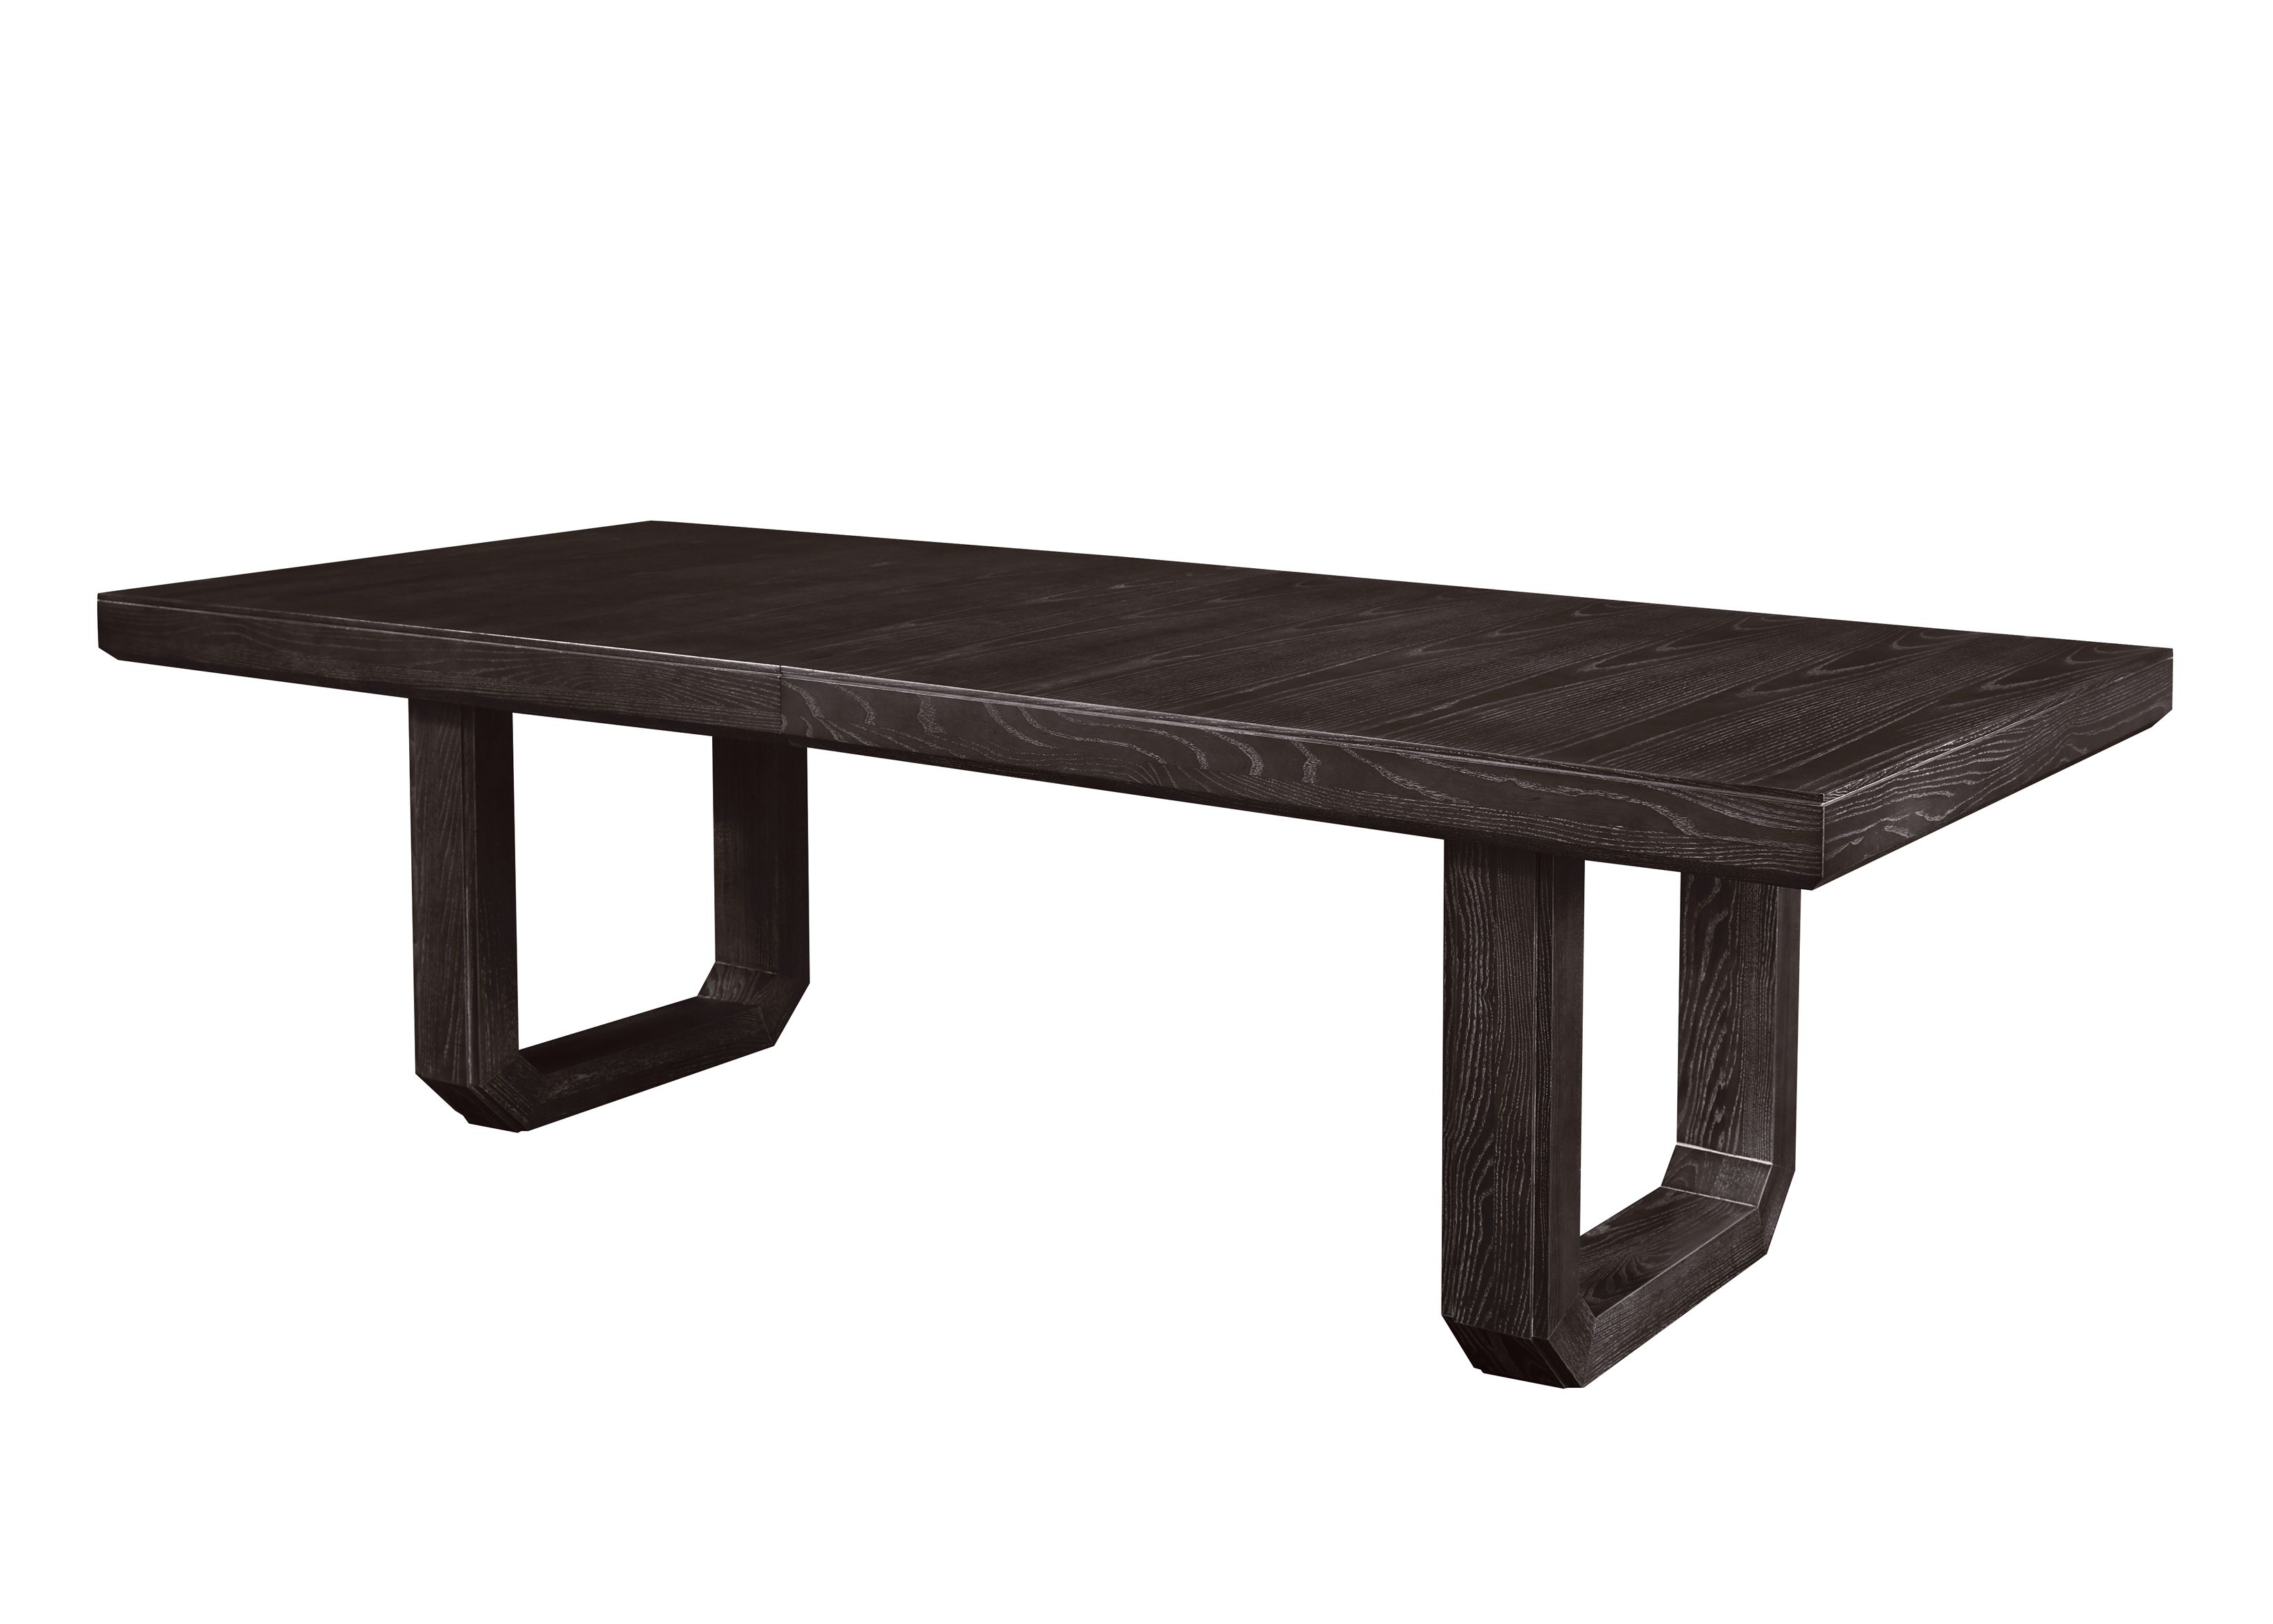 The Hable for HIckory Chair 854070 Oliver Dining Table in